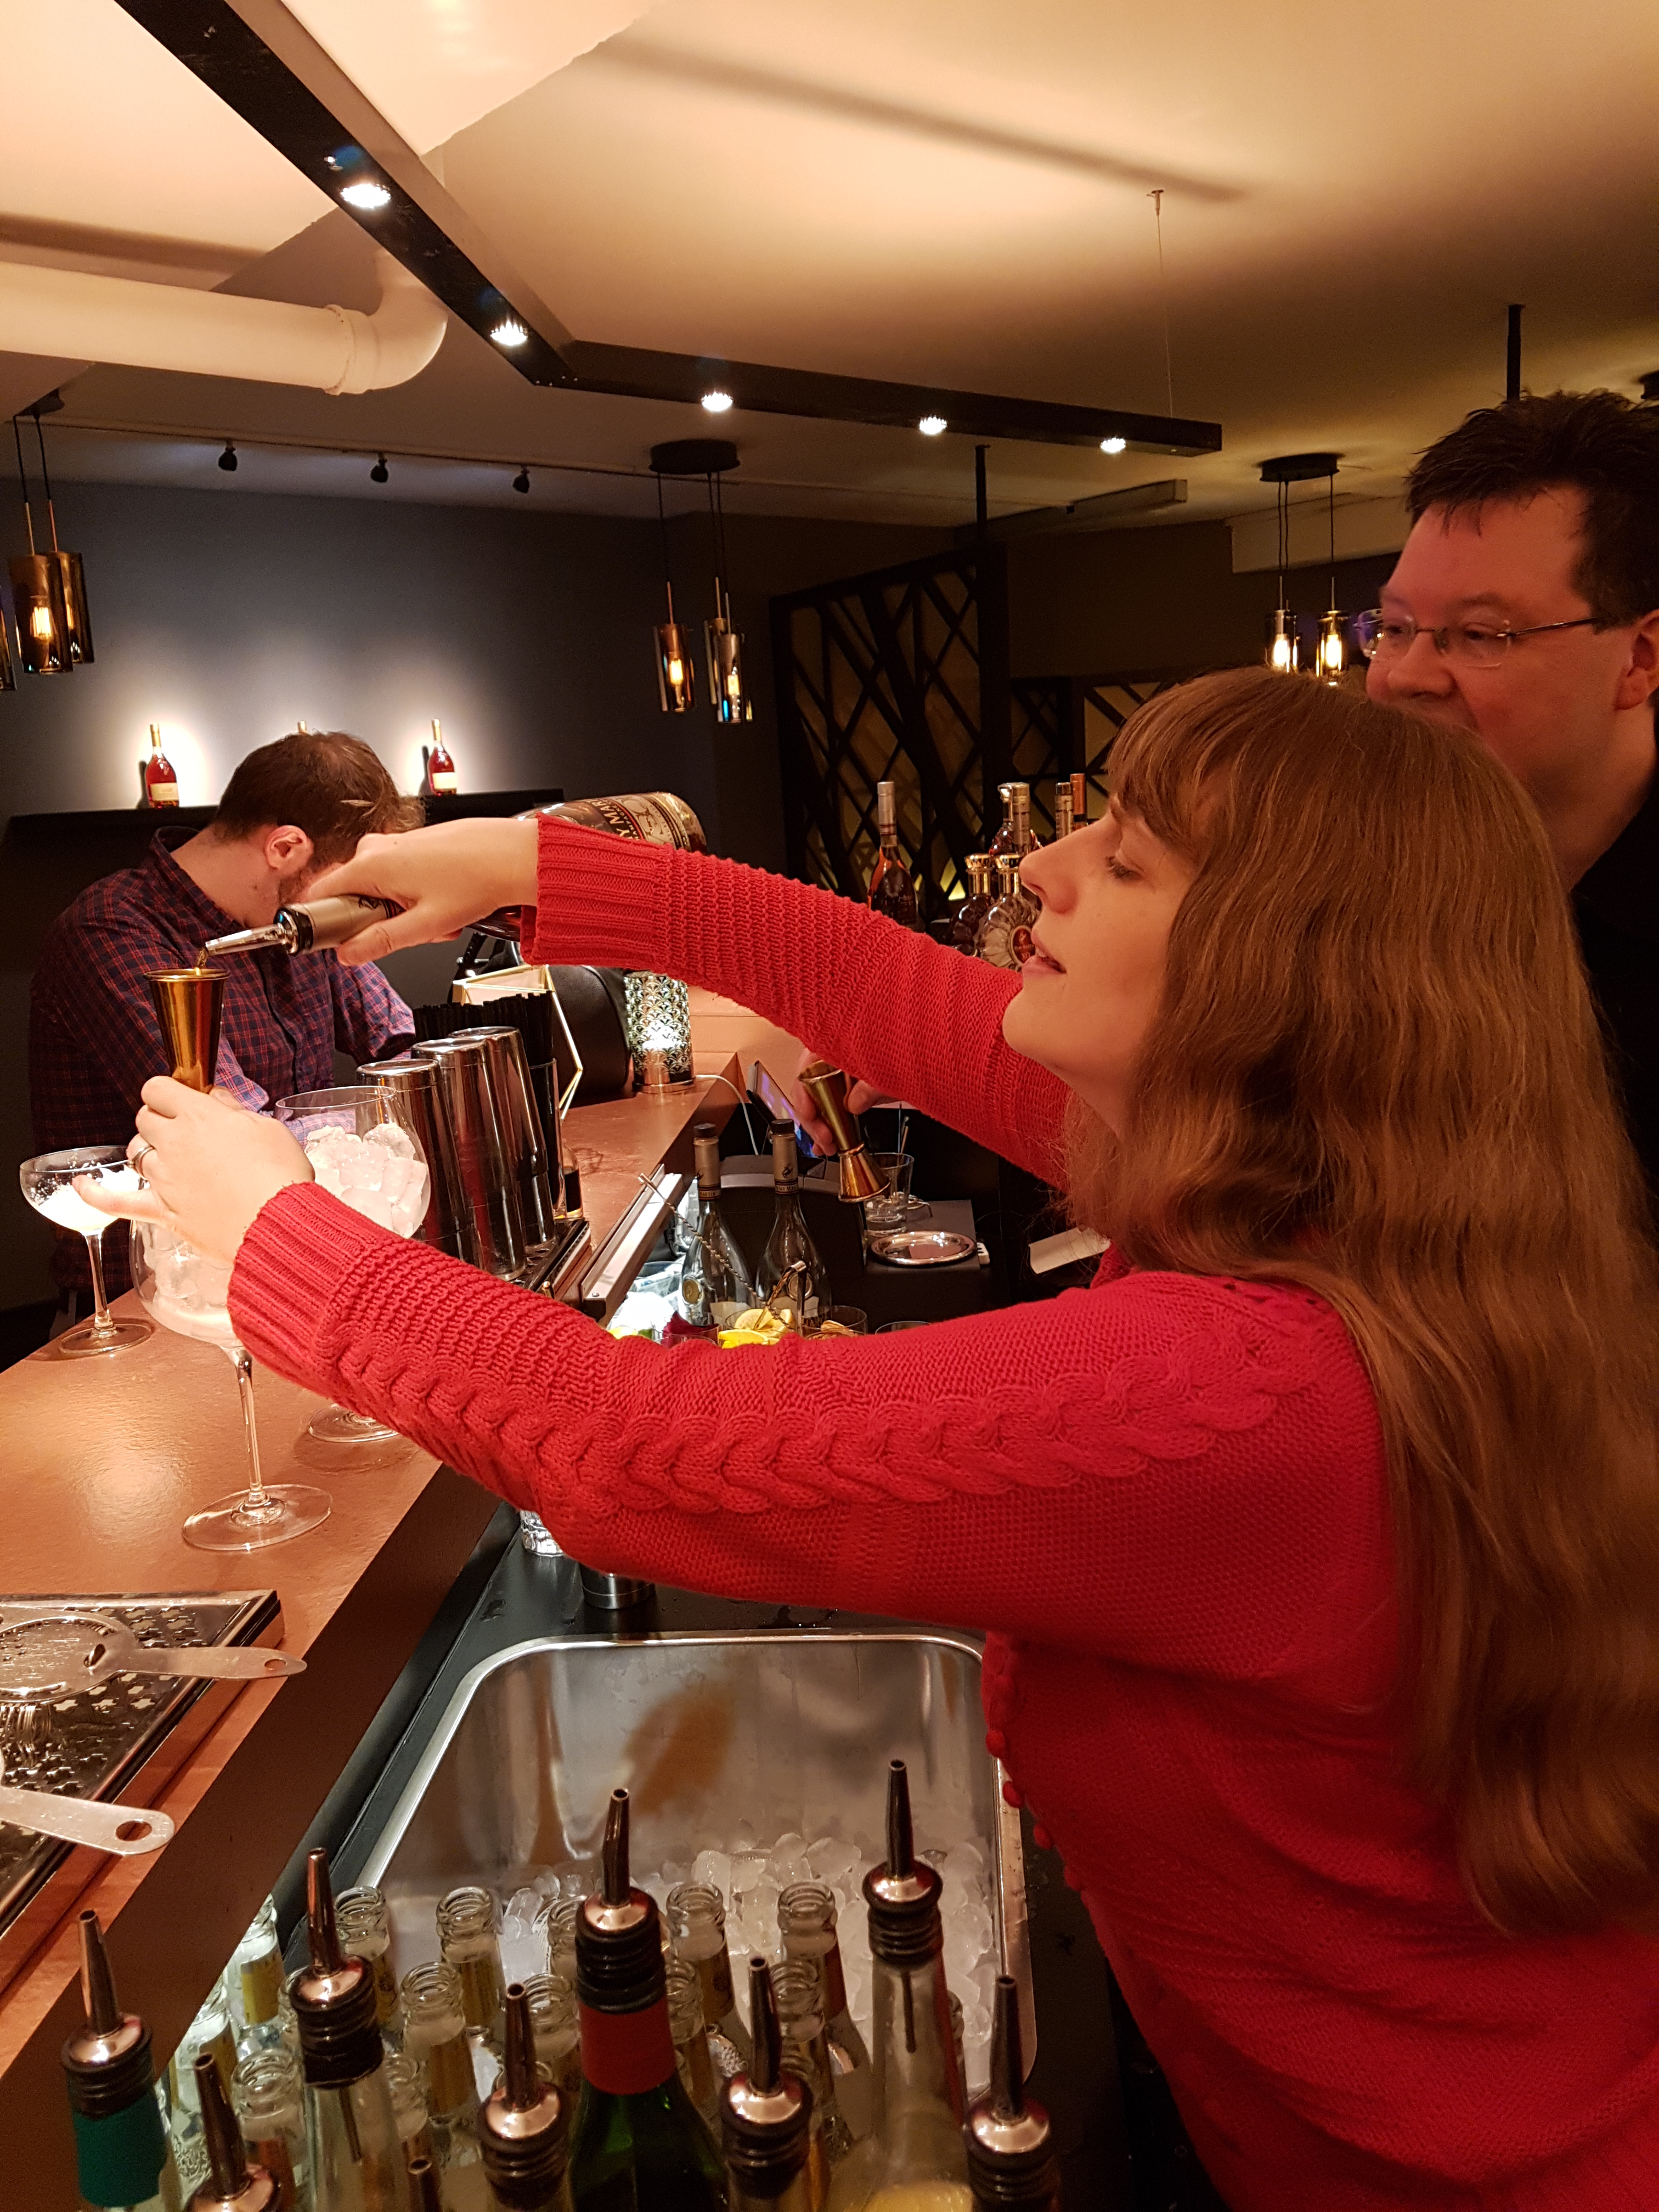 Remy me making drink